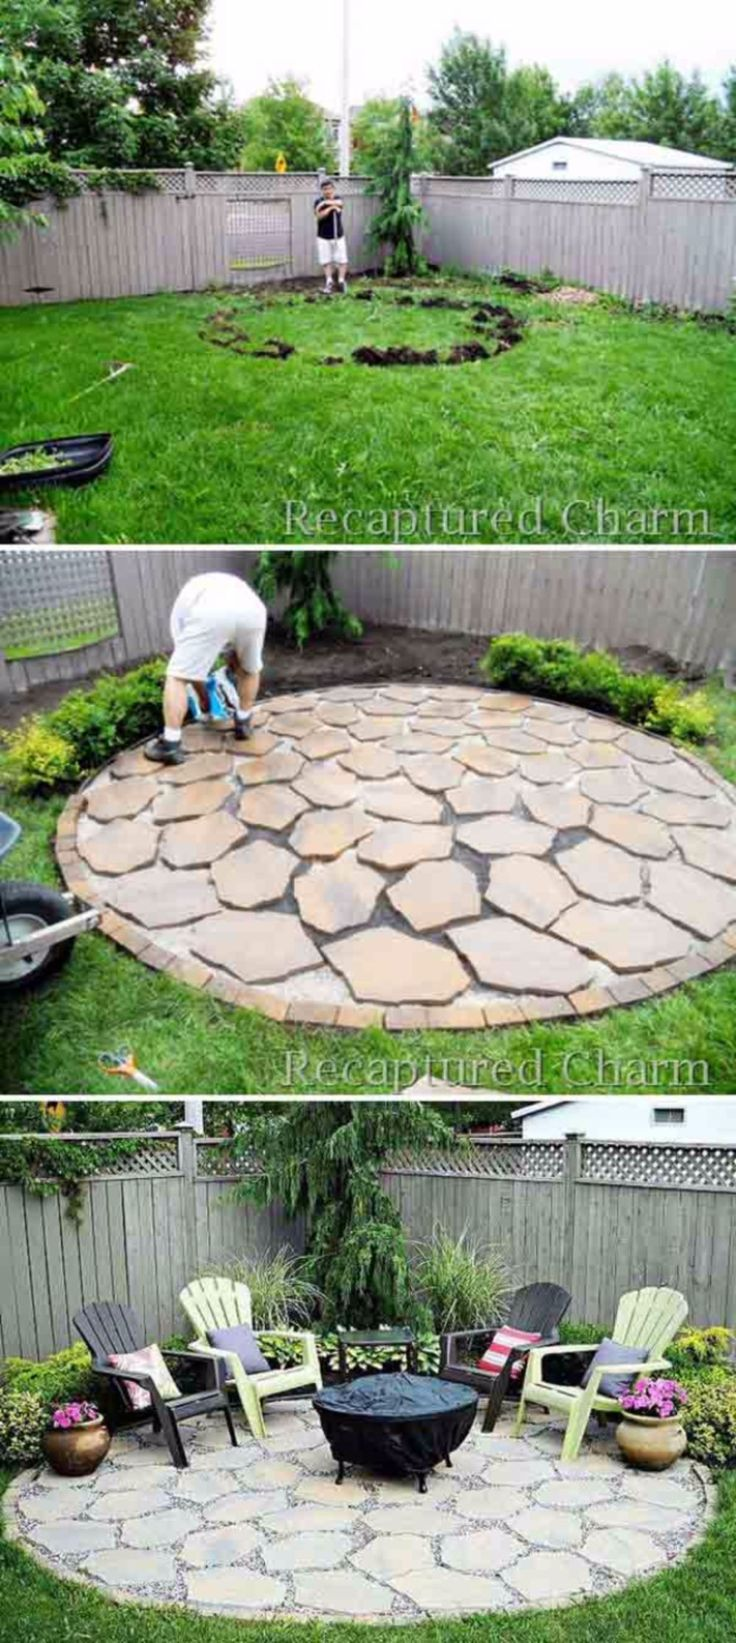 Patio ideas on a budget - 30 Diy Patio Ideas On A Budget